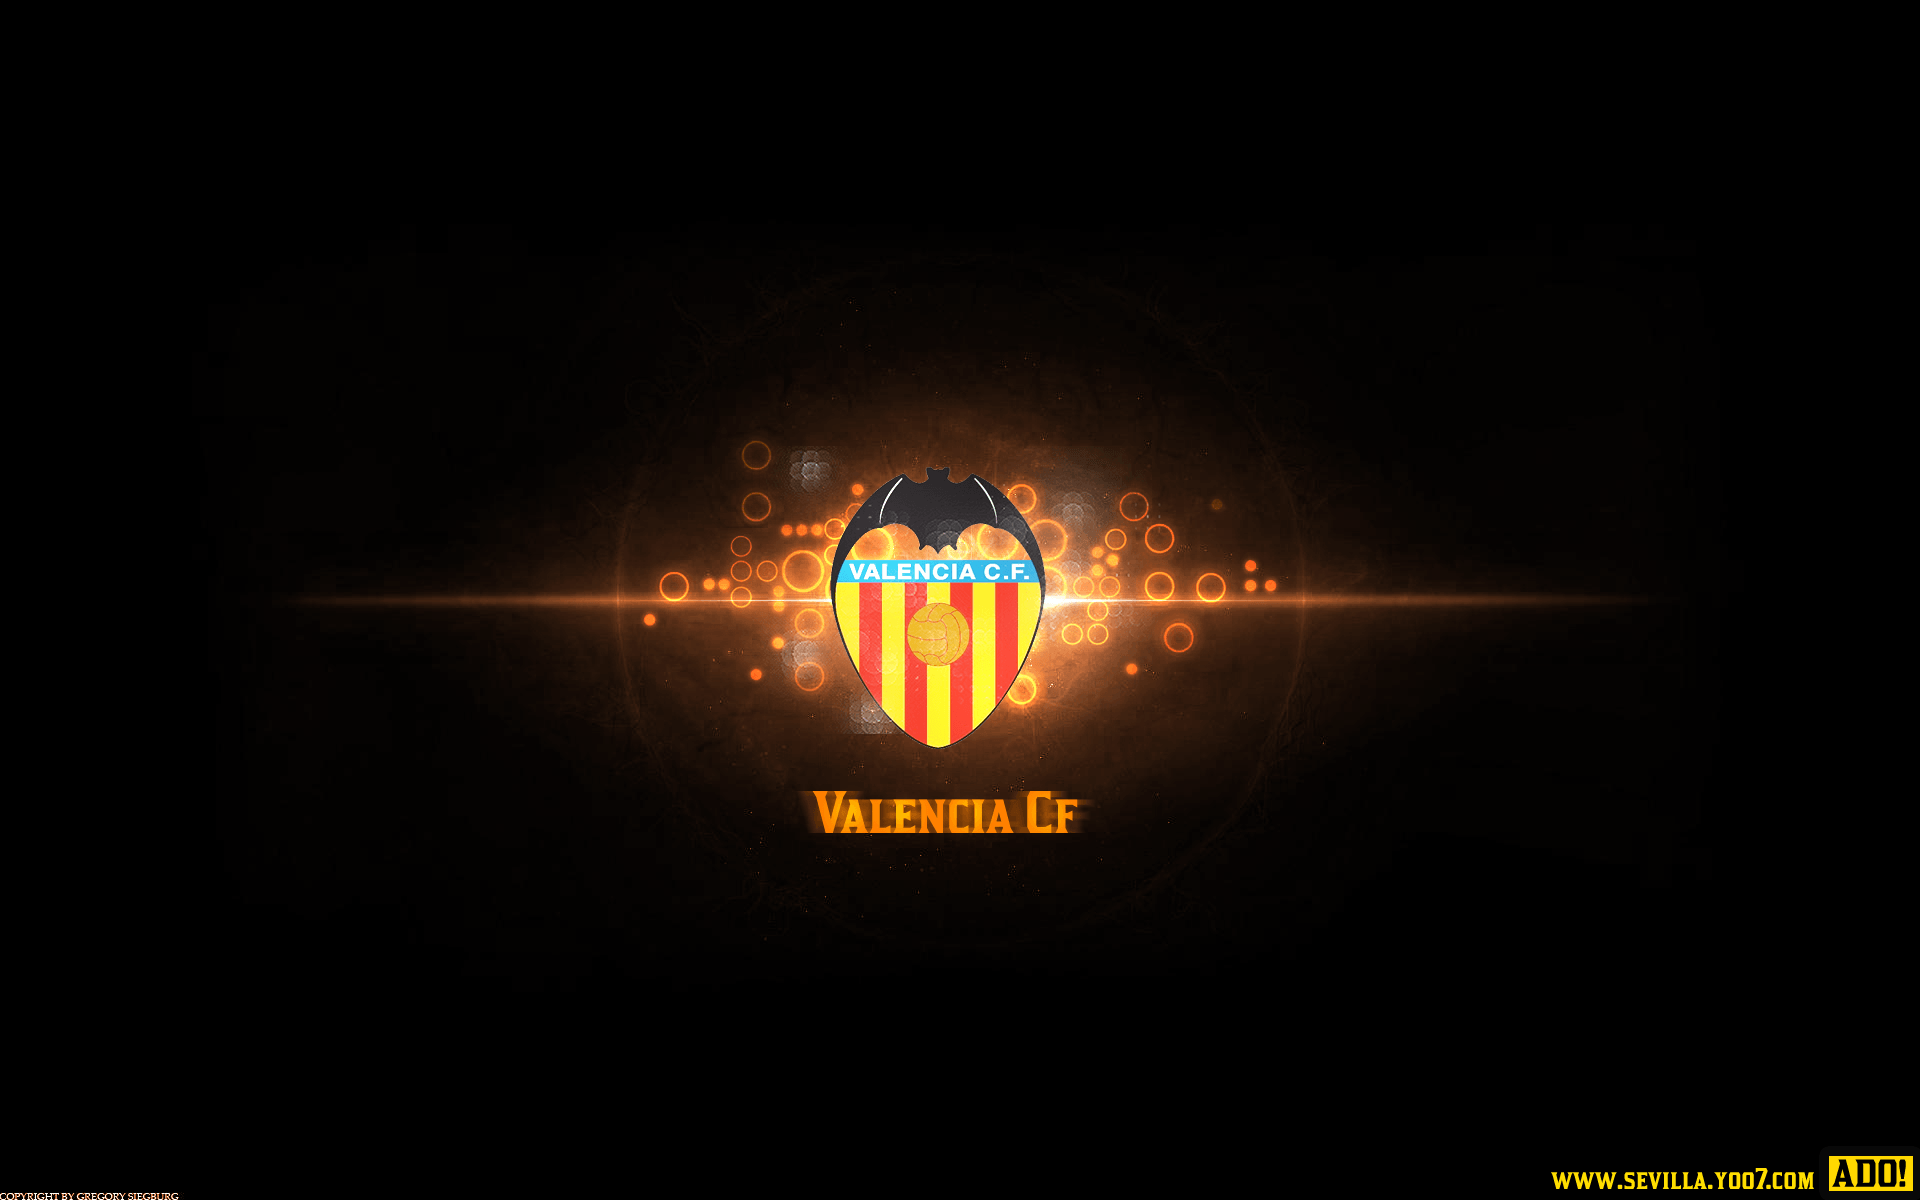 Valencia wallpapers wallpaper cave for Fondo de pantalla valencia cf